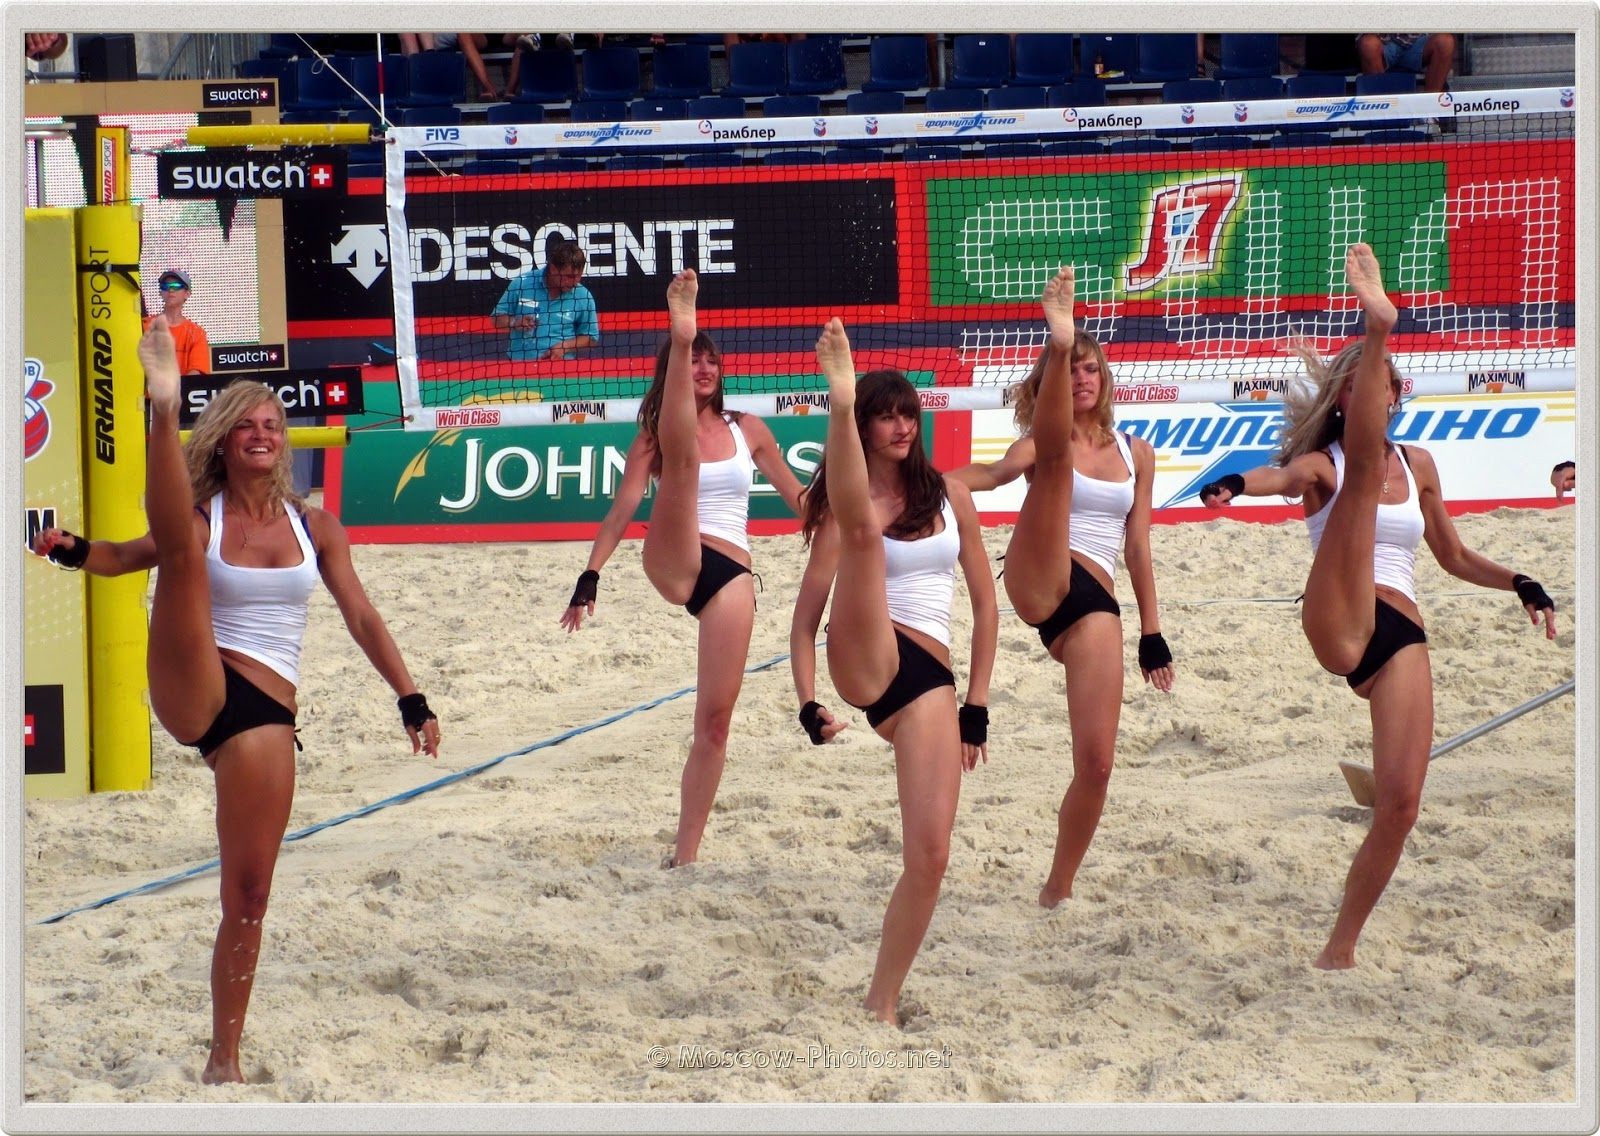 Beach Volleyball Black-White Bikini Cheerleaders